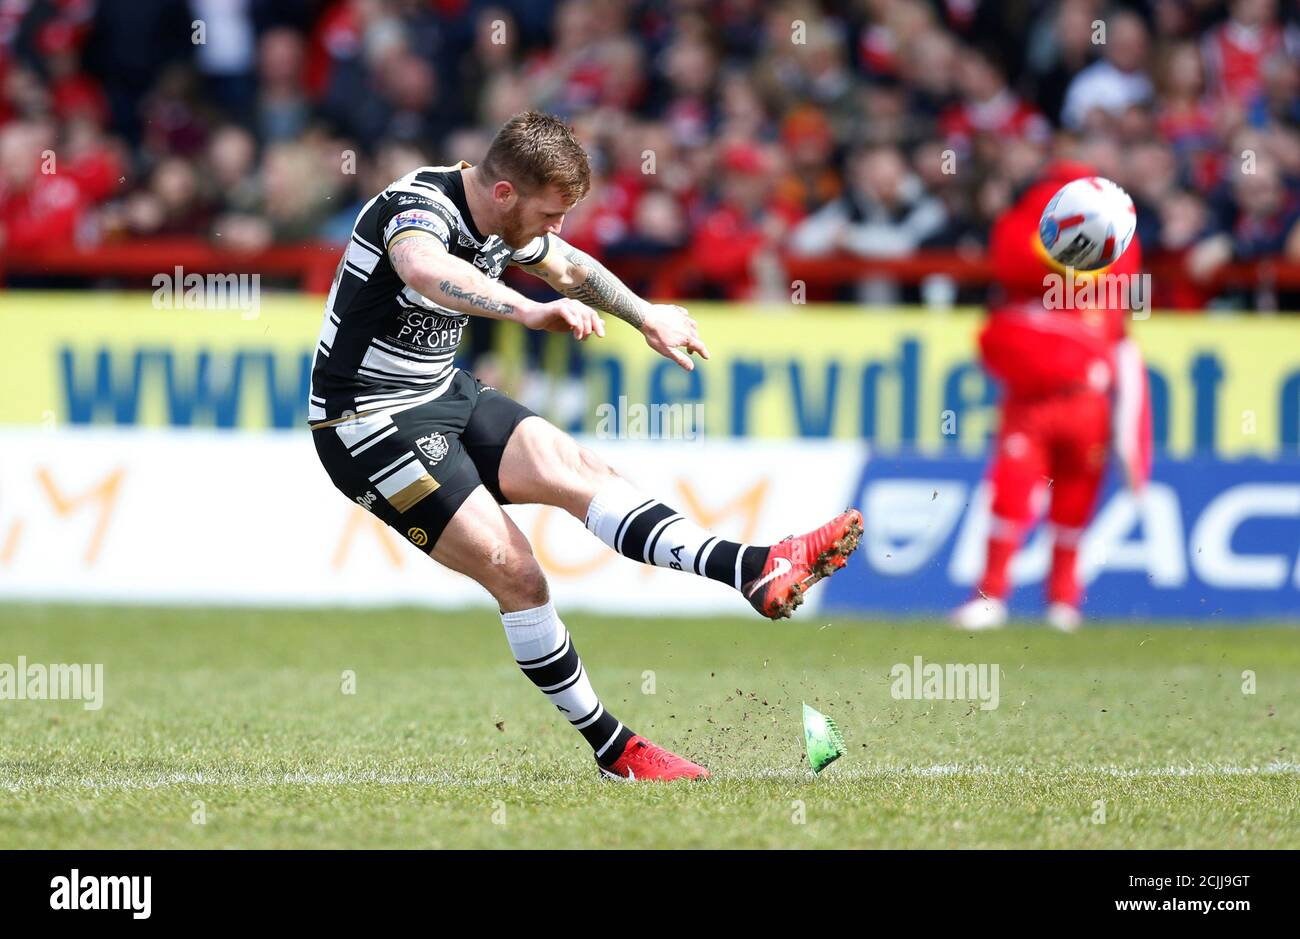 Rugby League - Super League - Hull Kingston Rovers vs Hull FC - KCOM Craven Park, Hull, Britain - March 30, 2018 Marc Sneyd von Hull FC konvertiert ihren ersten Versuch Action Images/Ed Sykes Stockfoto